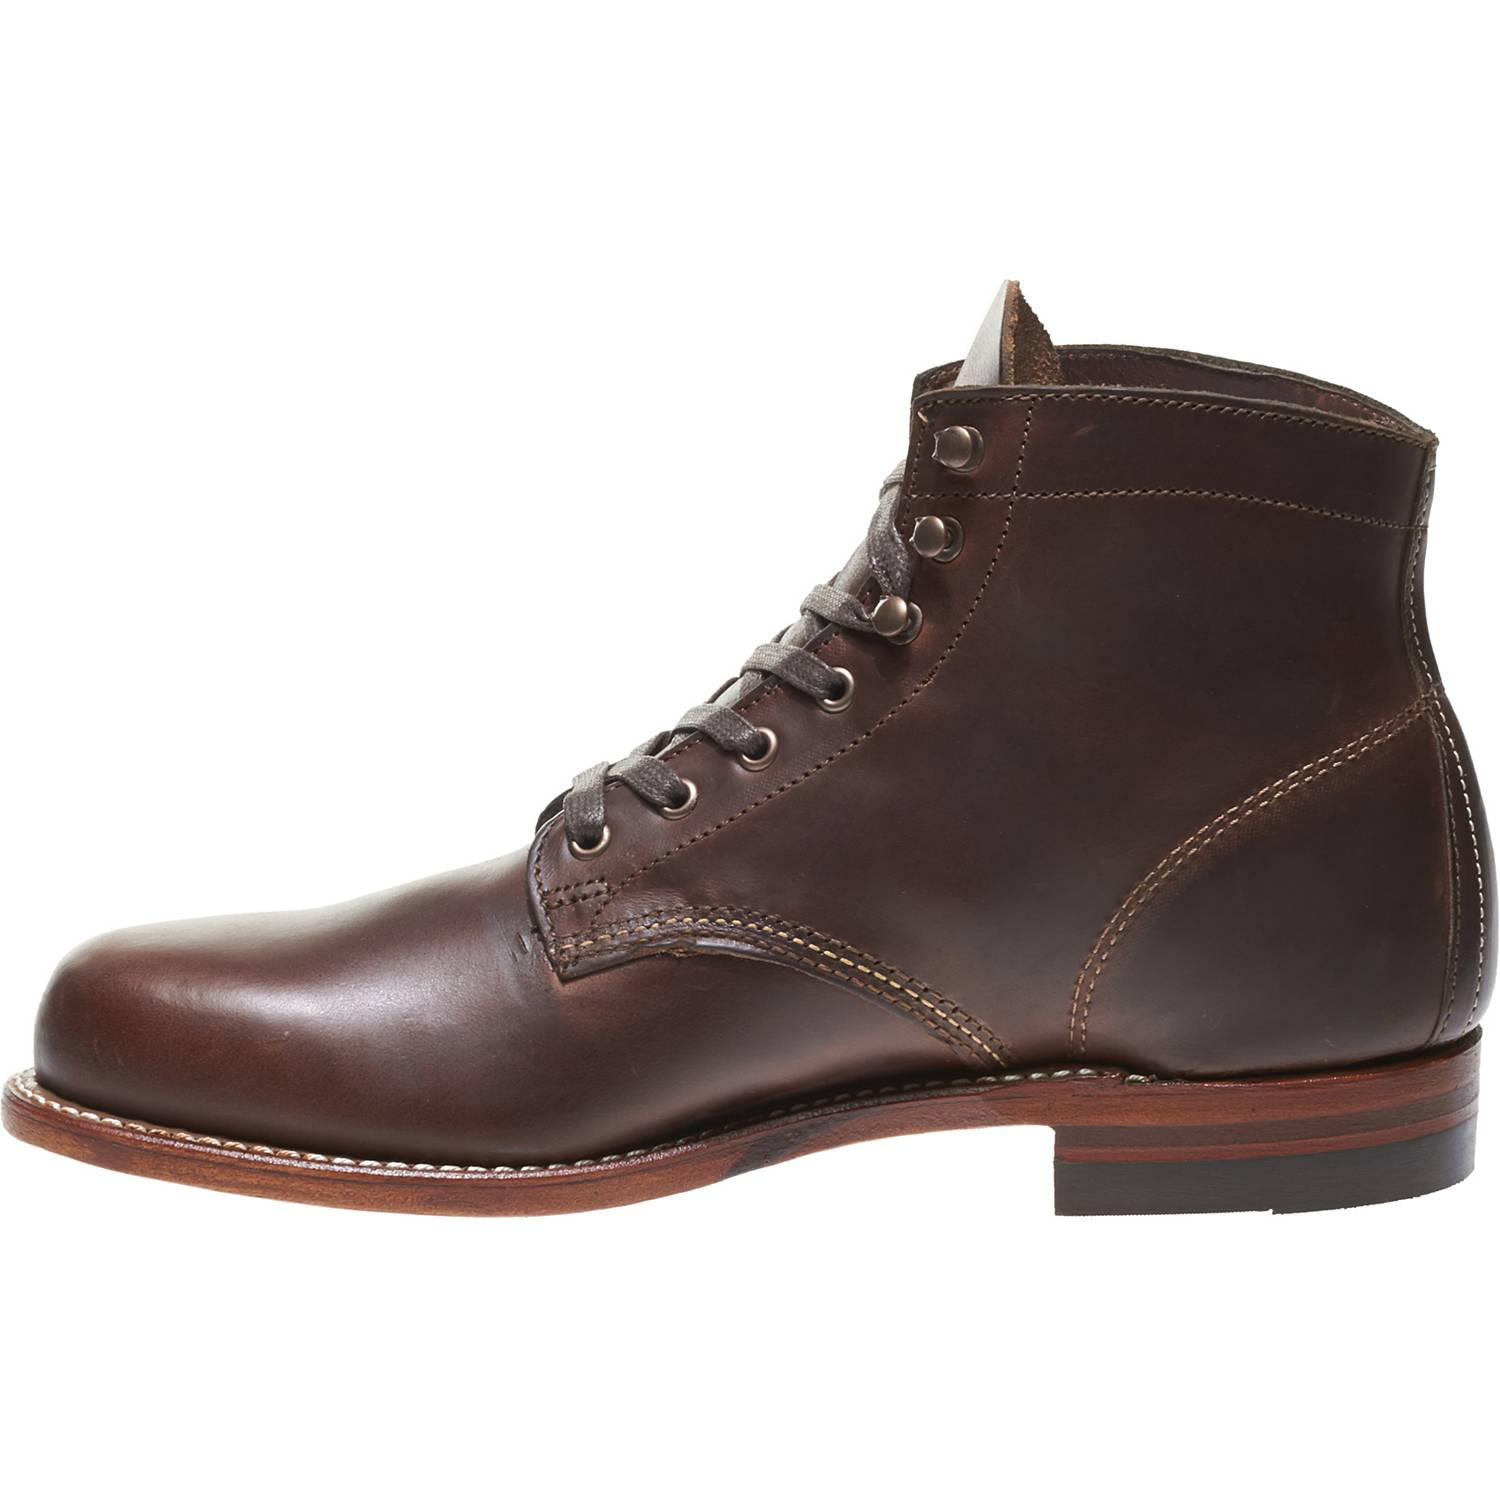 Wolverine-1000-Mile-Men-039-s-Leather-Boots-Cordovan-8-Black-Brown-Rust thumbnail 8